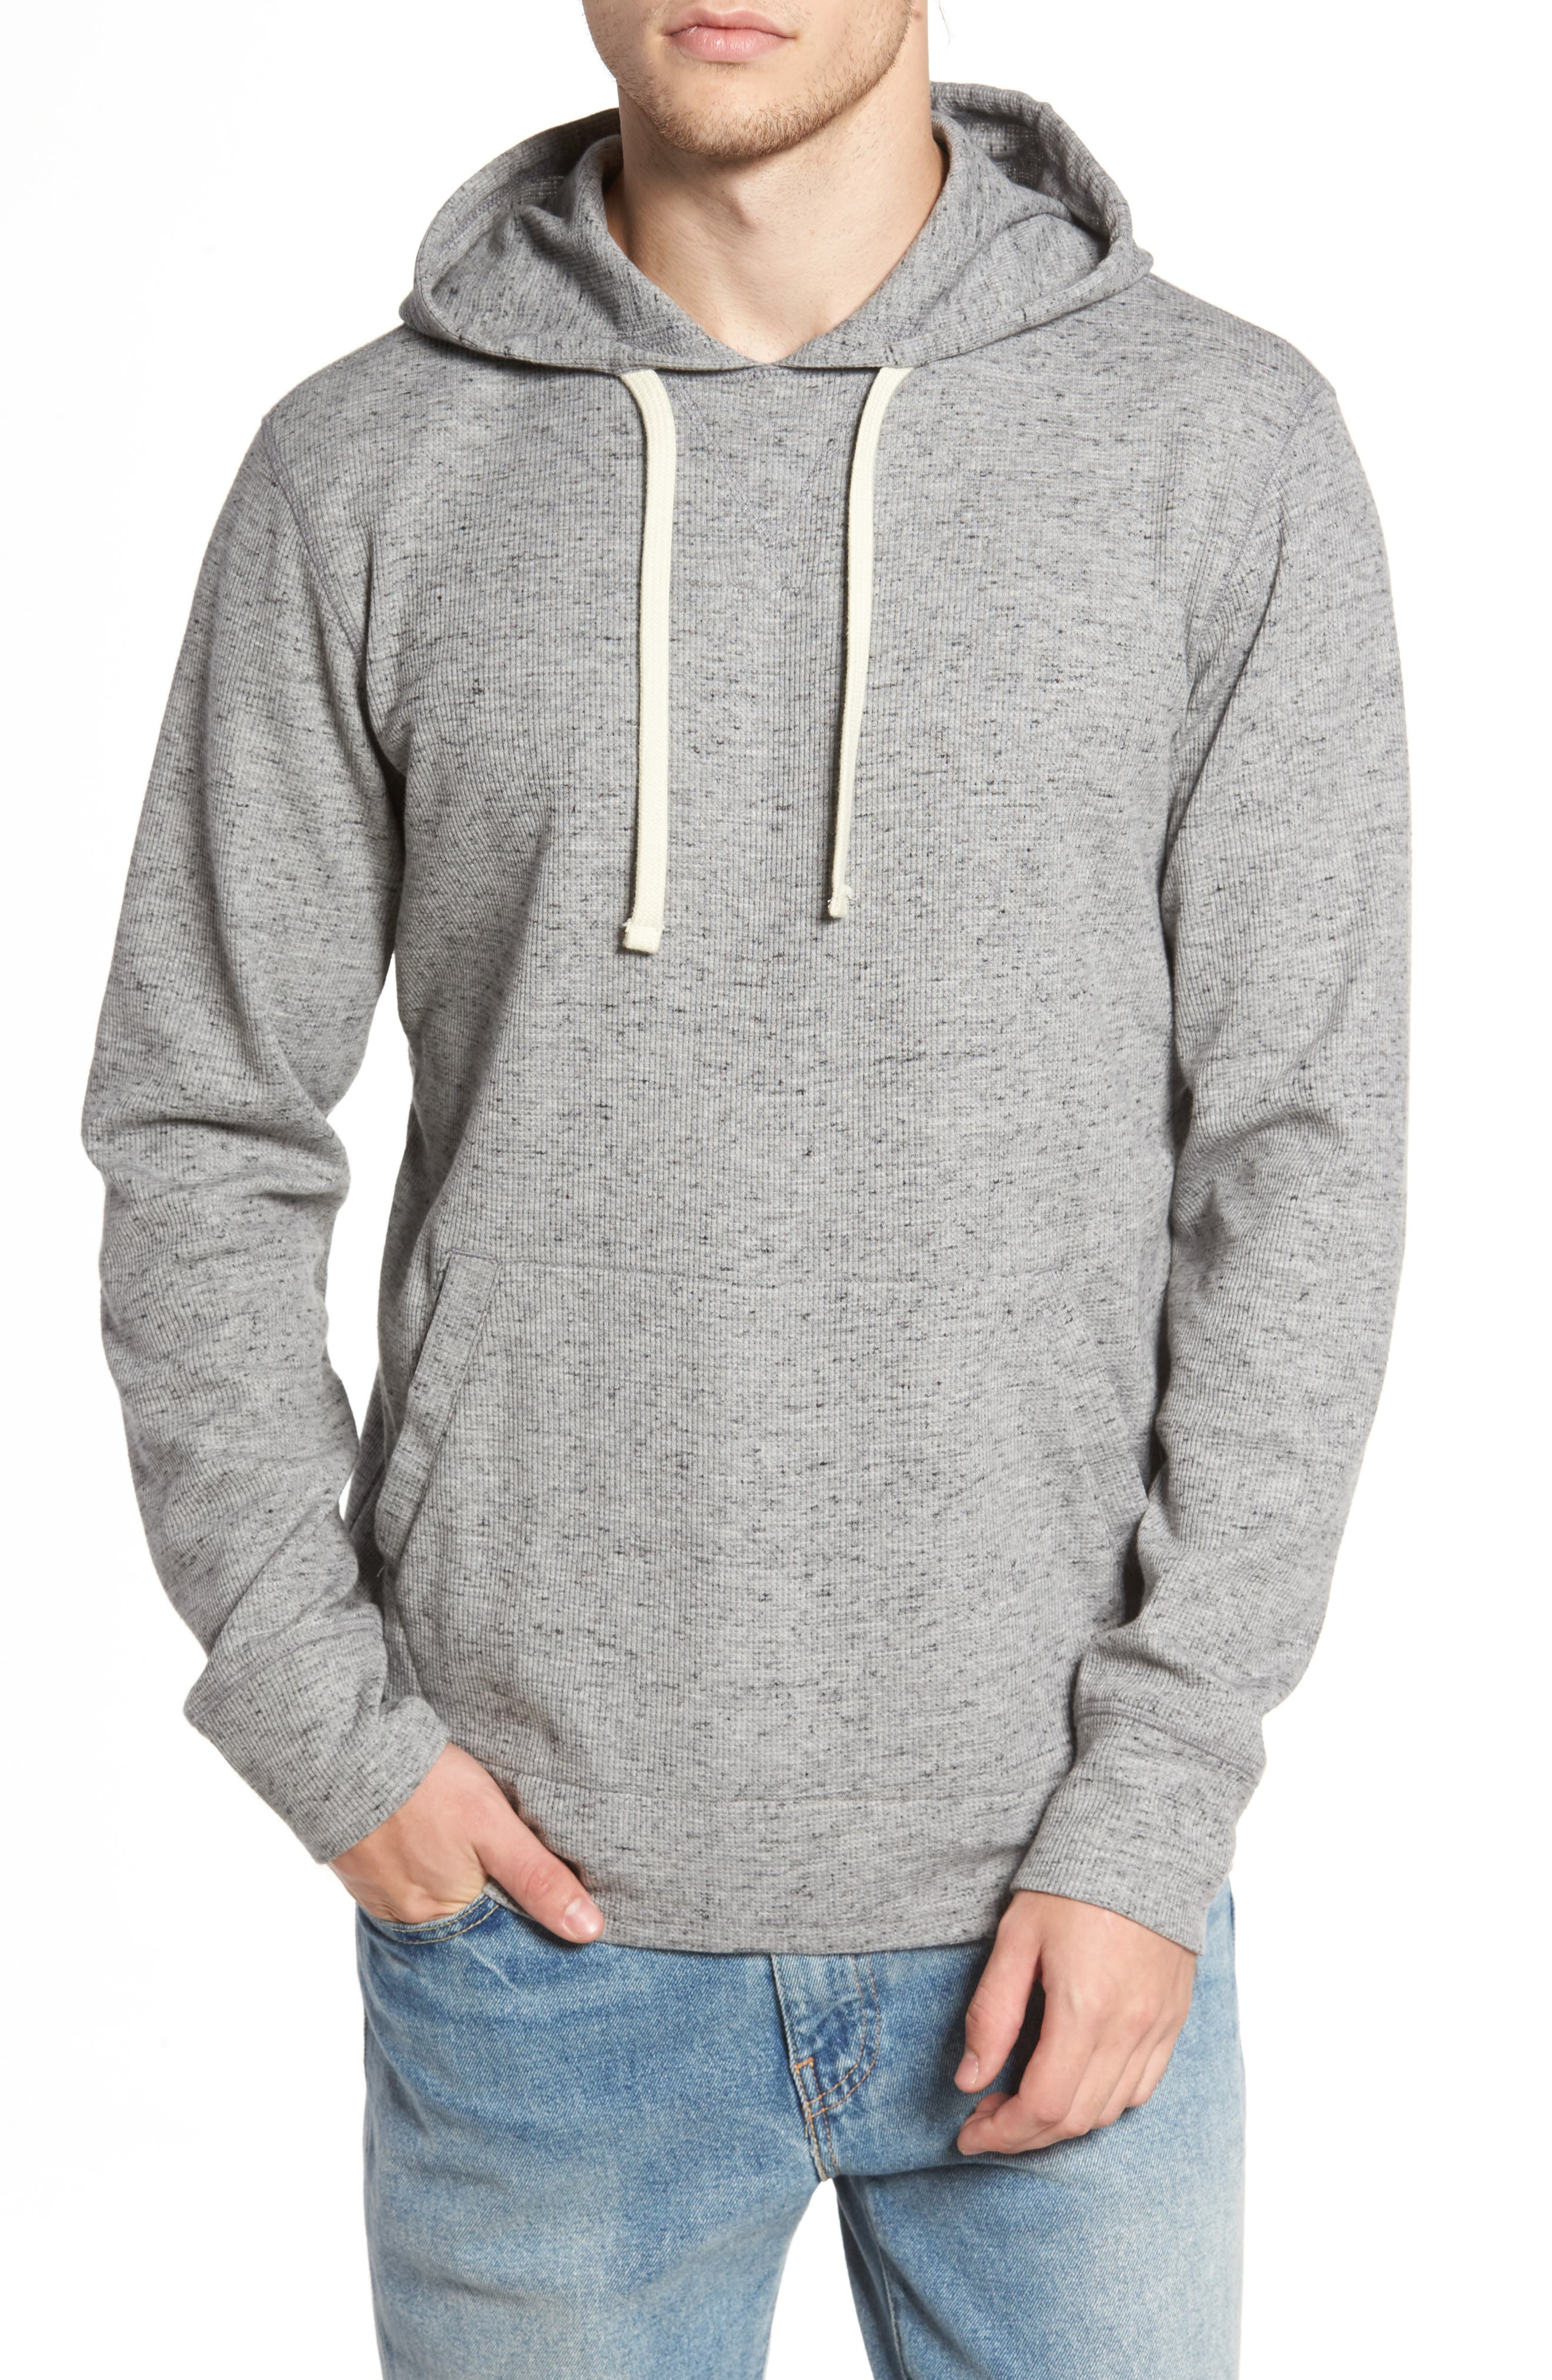 Boldin Thermal Pullover Hoodie,                             Main thumbnail 1, color,                             Light Grey